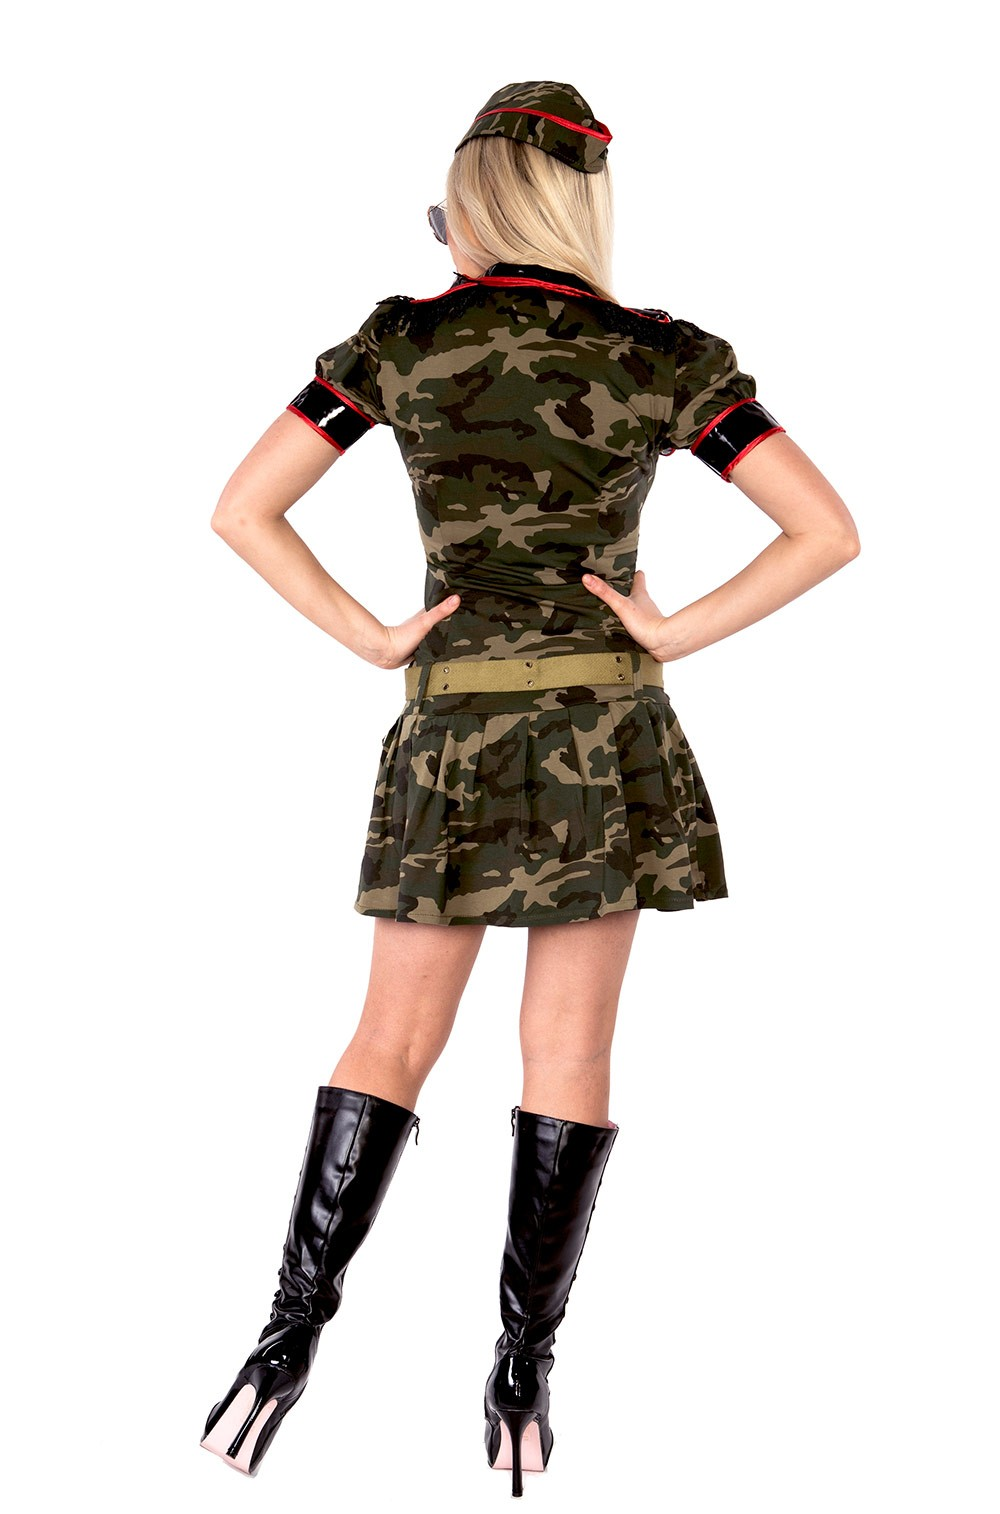 Ladies Army Girl Military Uniform Top Gun Flight Soldier Costume FBI ... 6d8a16288